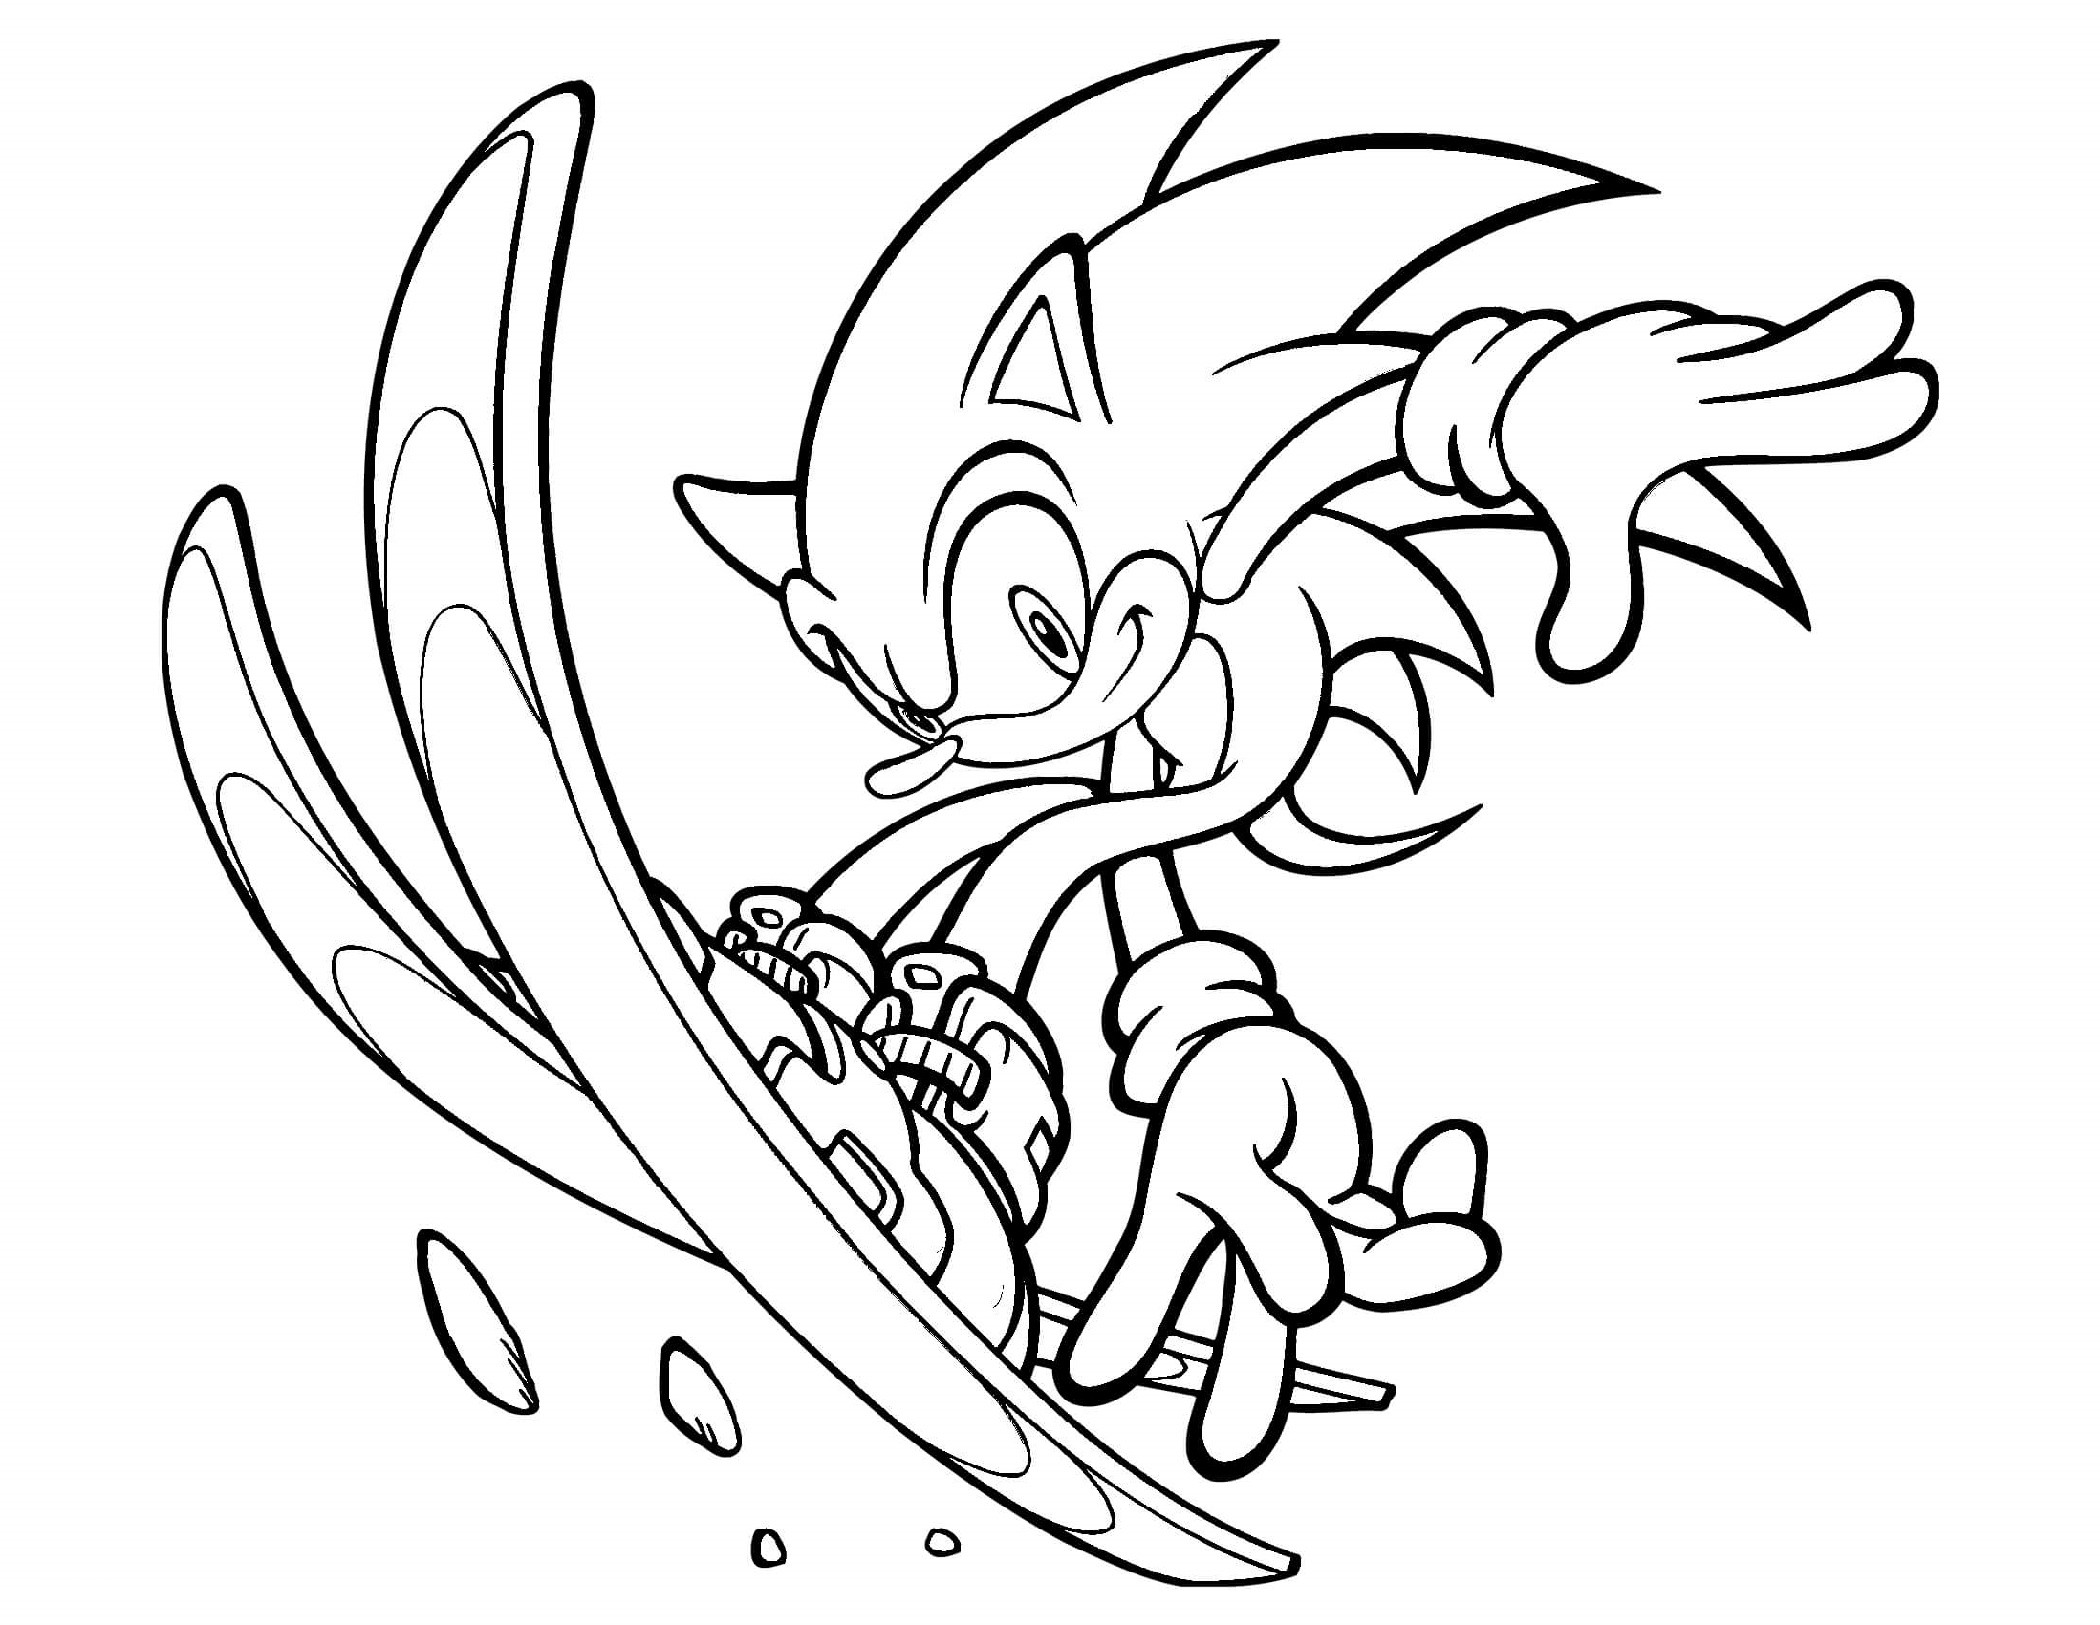 Sonic And Friends Coloring Pages - Coloring Home